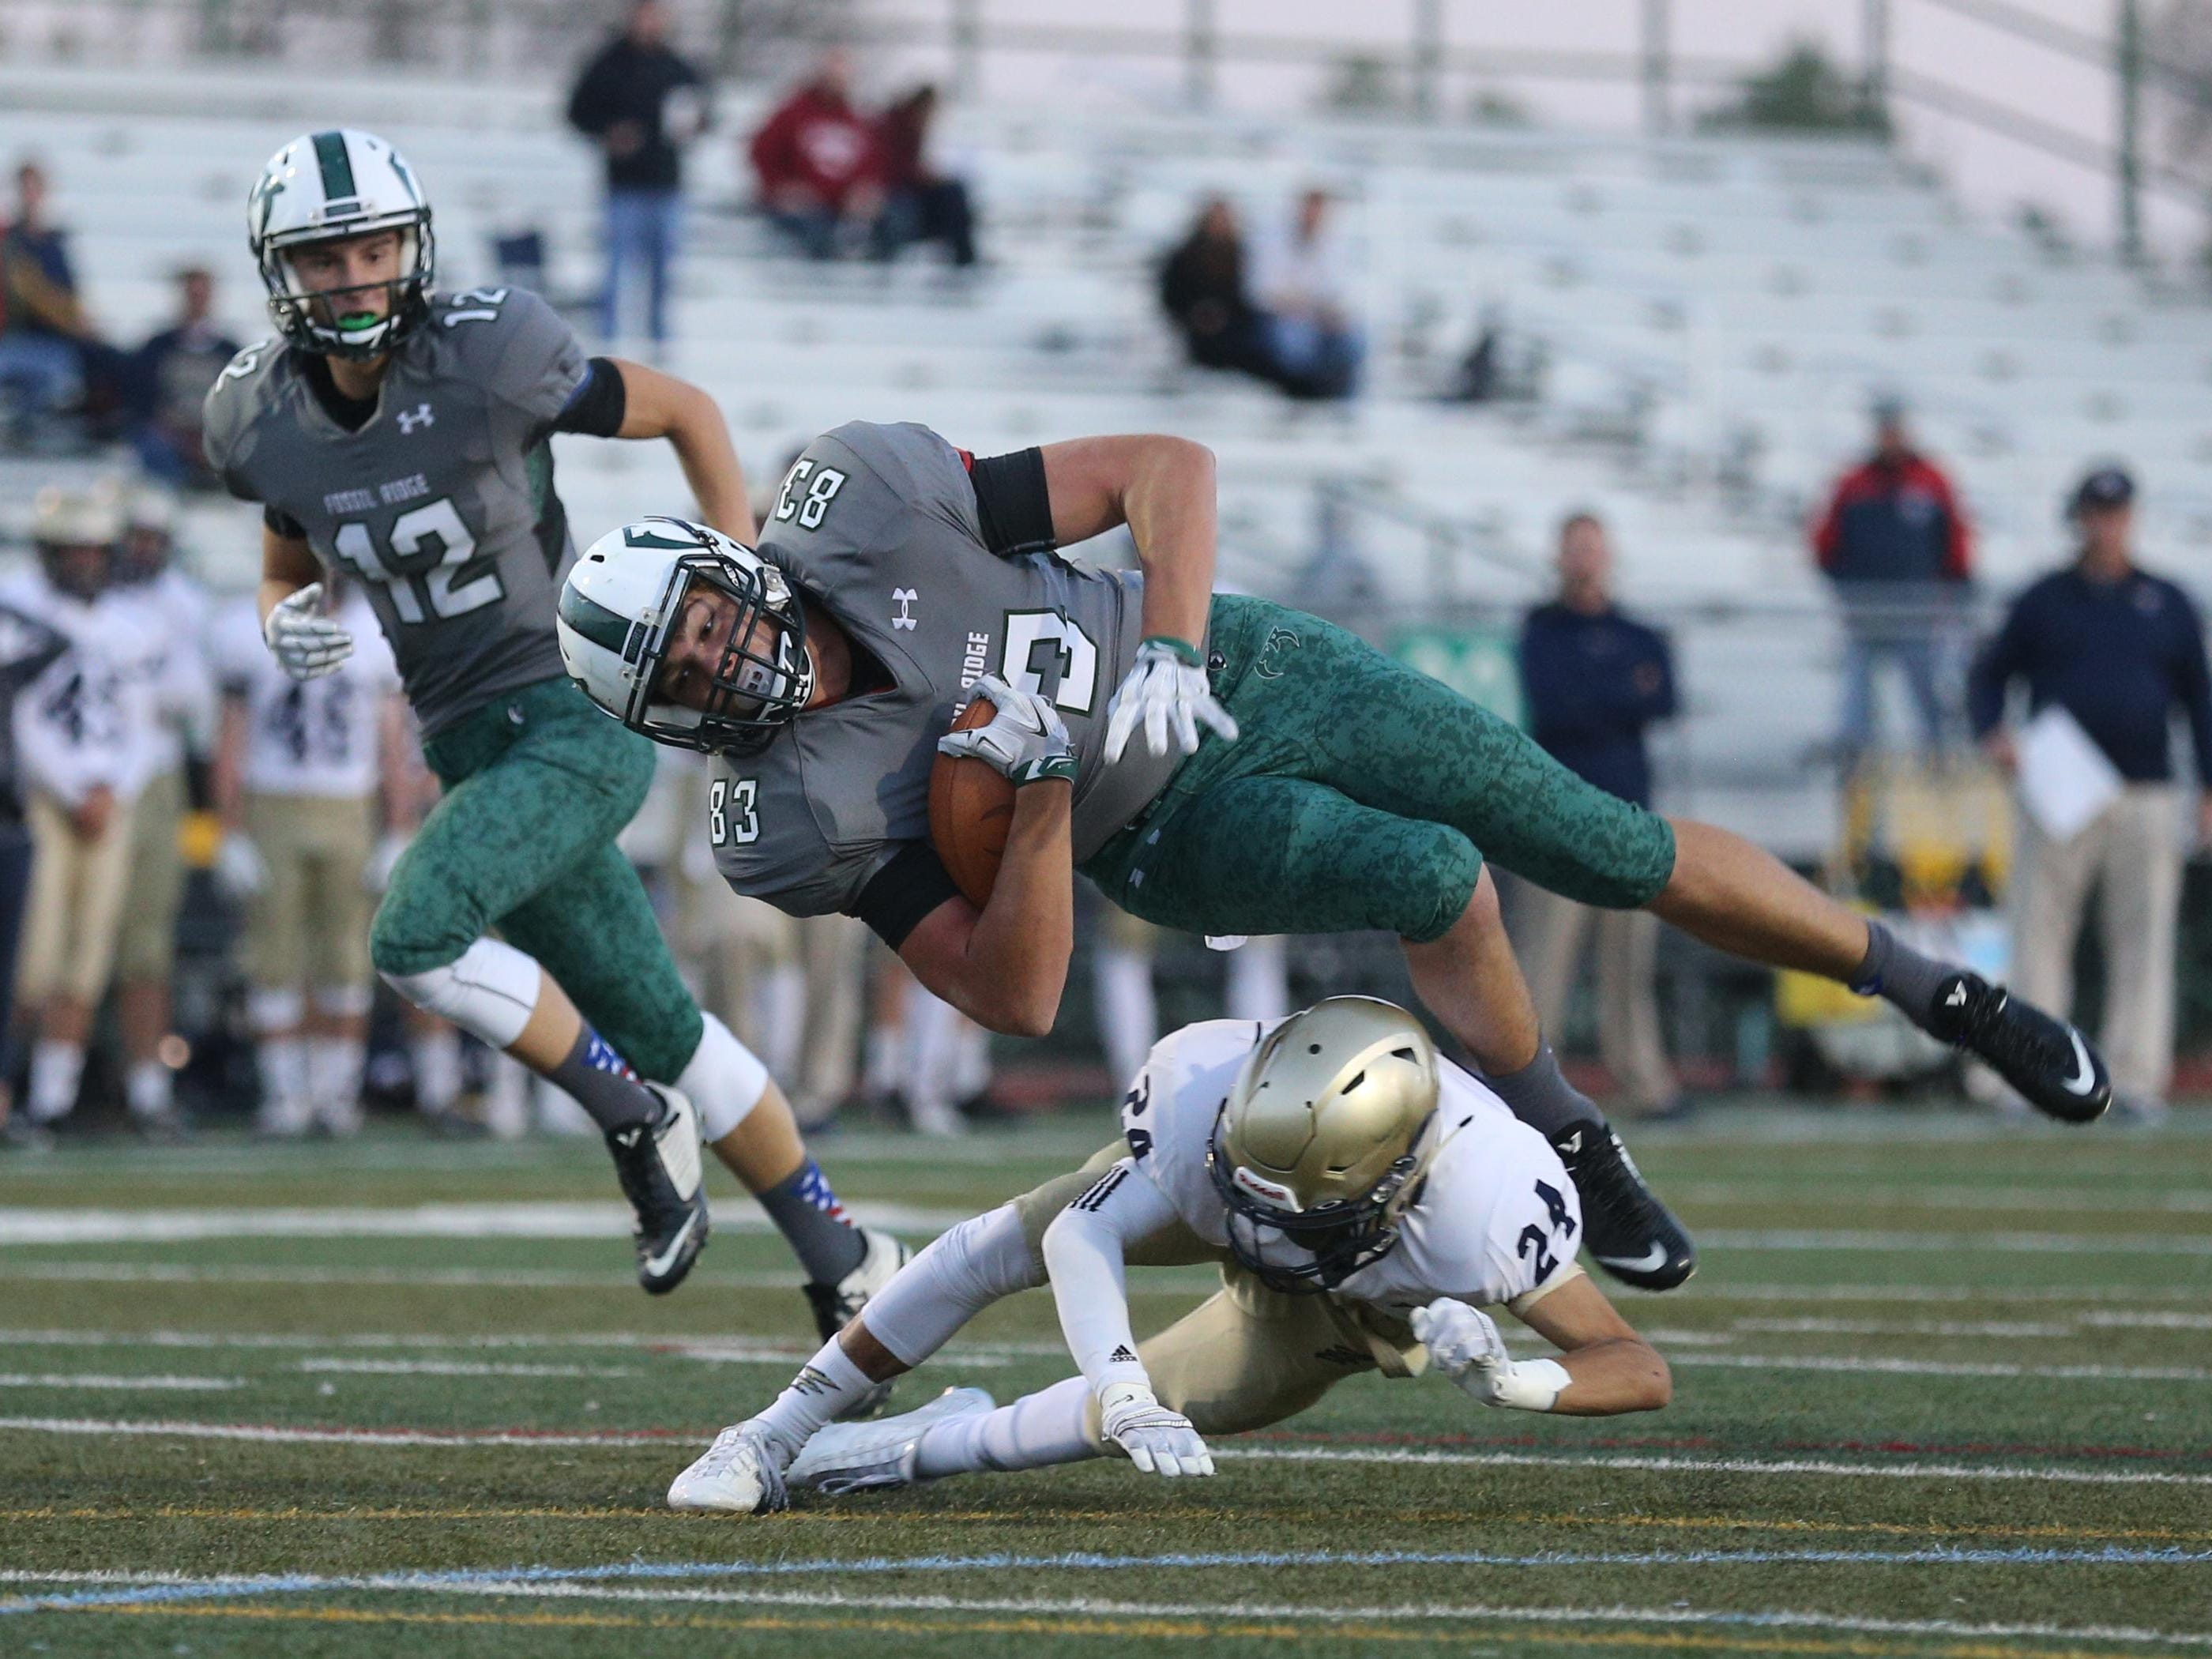 Fossil Ridge High School's Owen Arkin (Jr) gets tackled by Legacy High School's Devin Morlaes (Jr) during the first quarter at French Field in Fort Collins Colo. on Oct. 15, 2015.